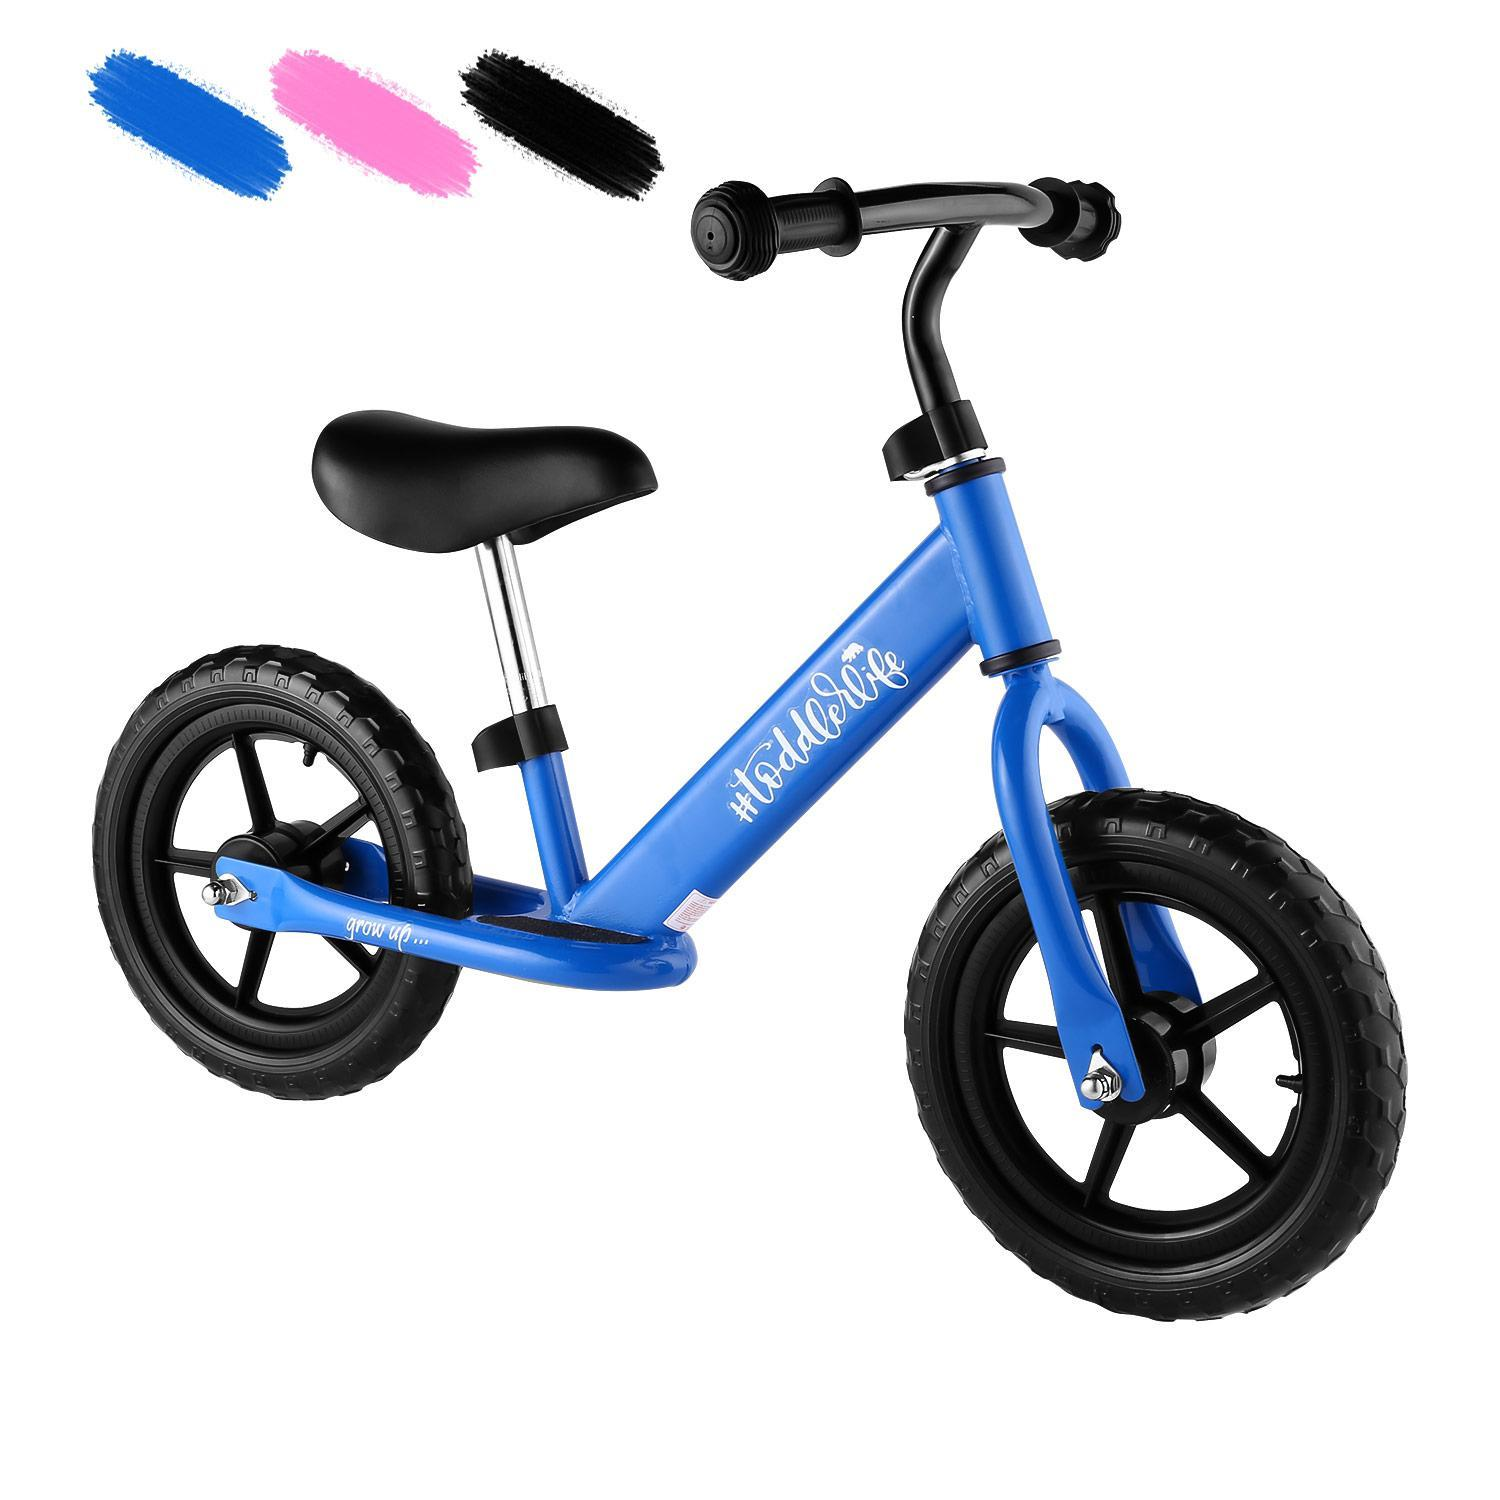 Baby Balance Bike for Kids Age 3-6 Y/Adjustable Seat and Handle Height-More Suit for Growing Children HFON